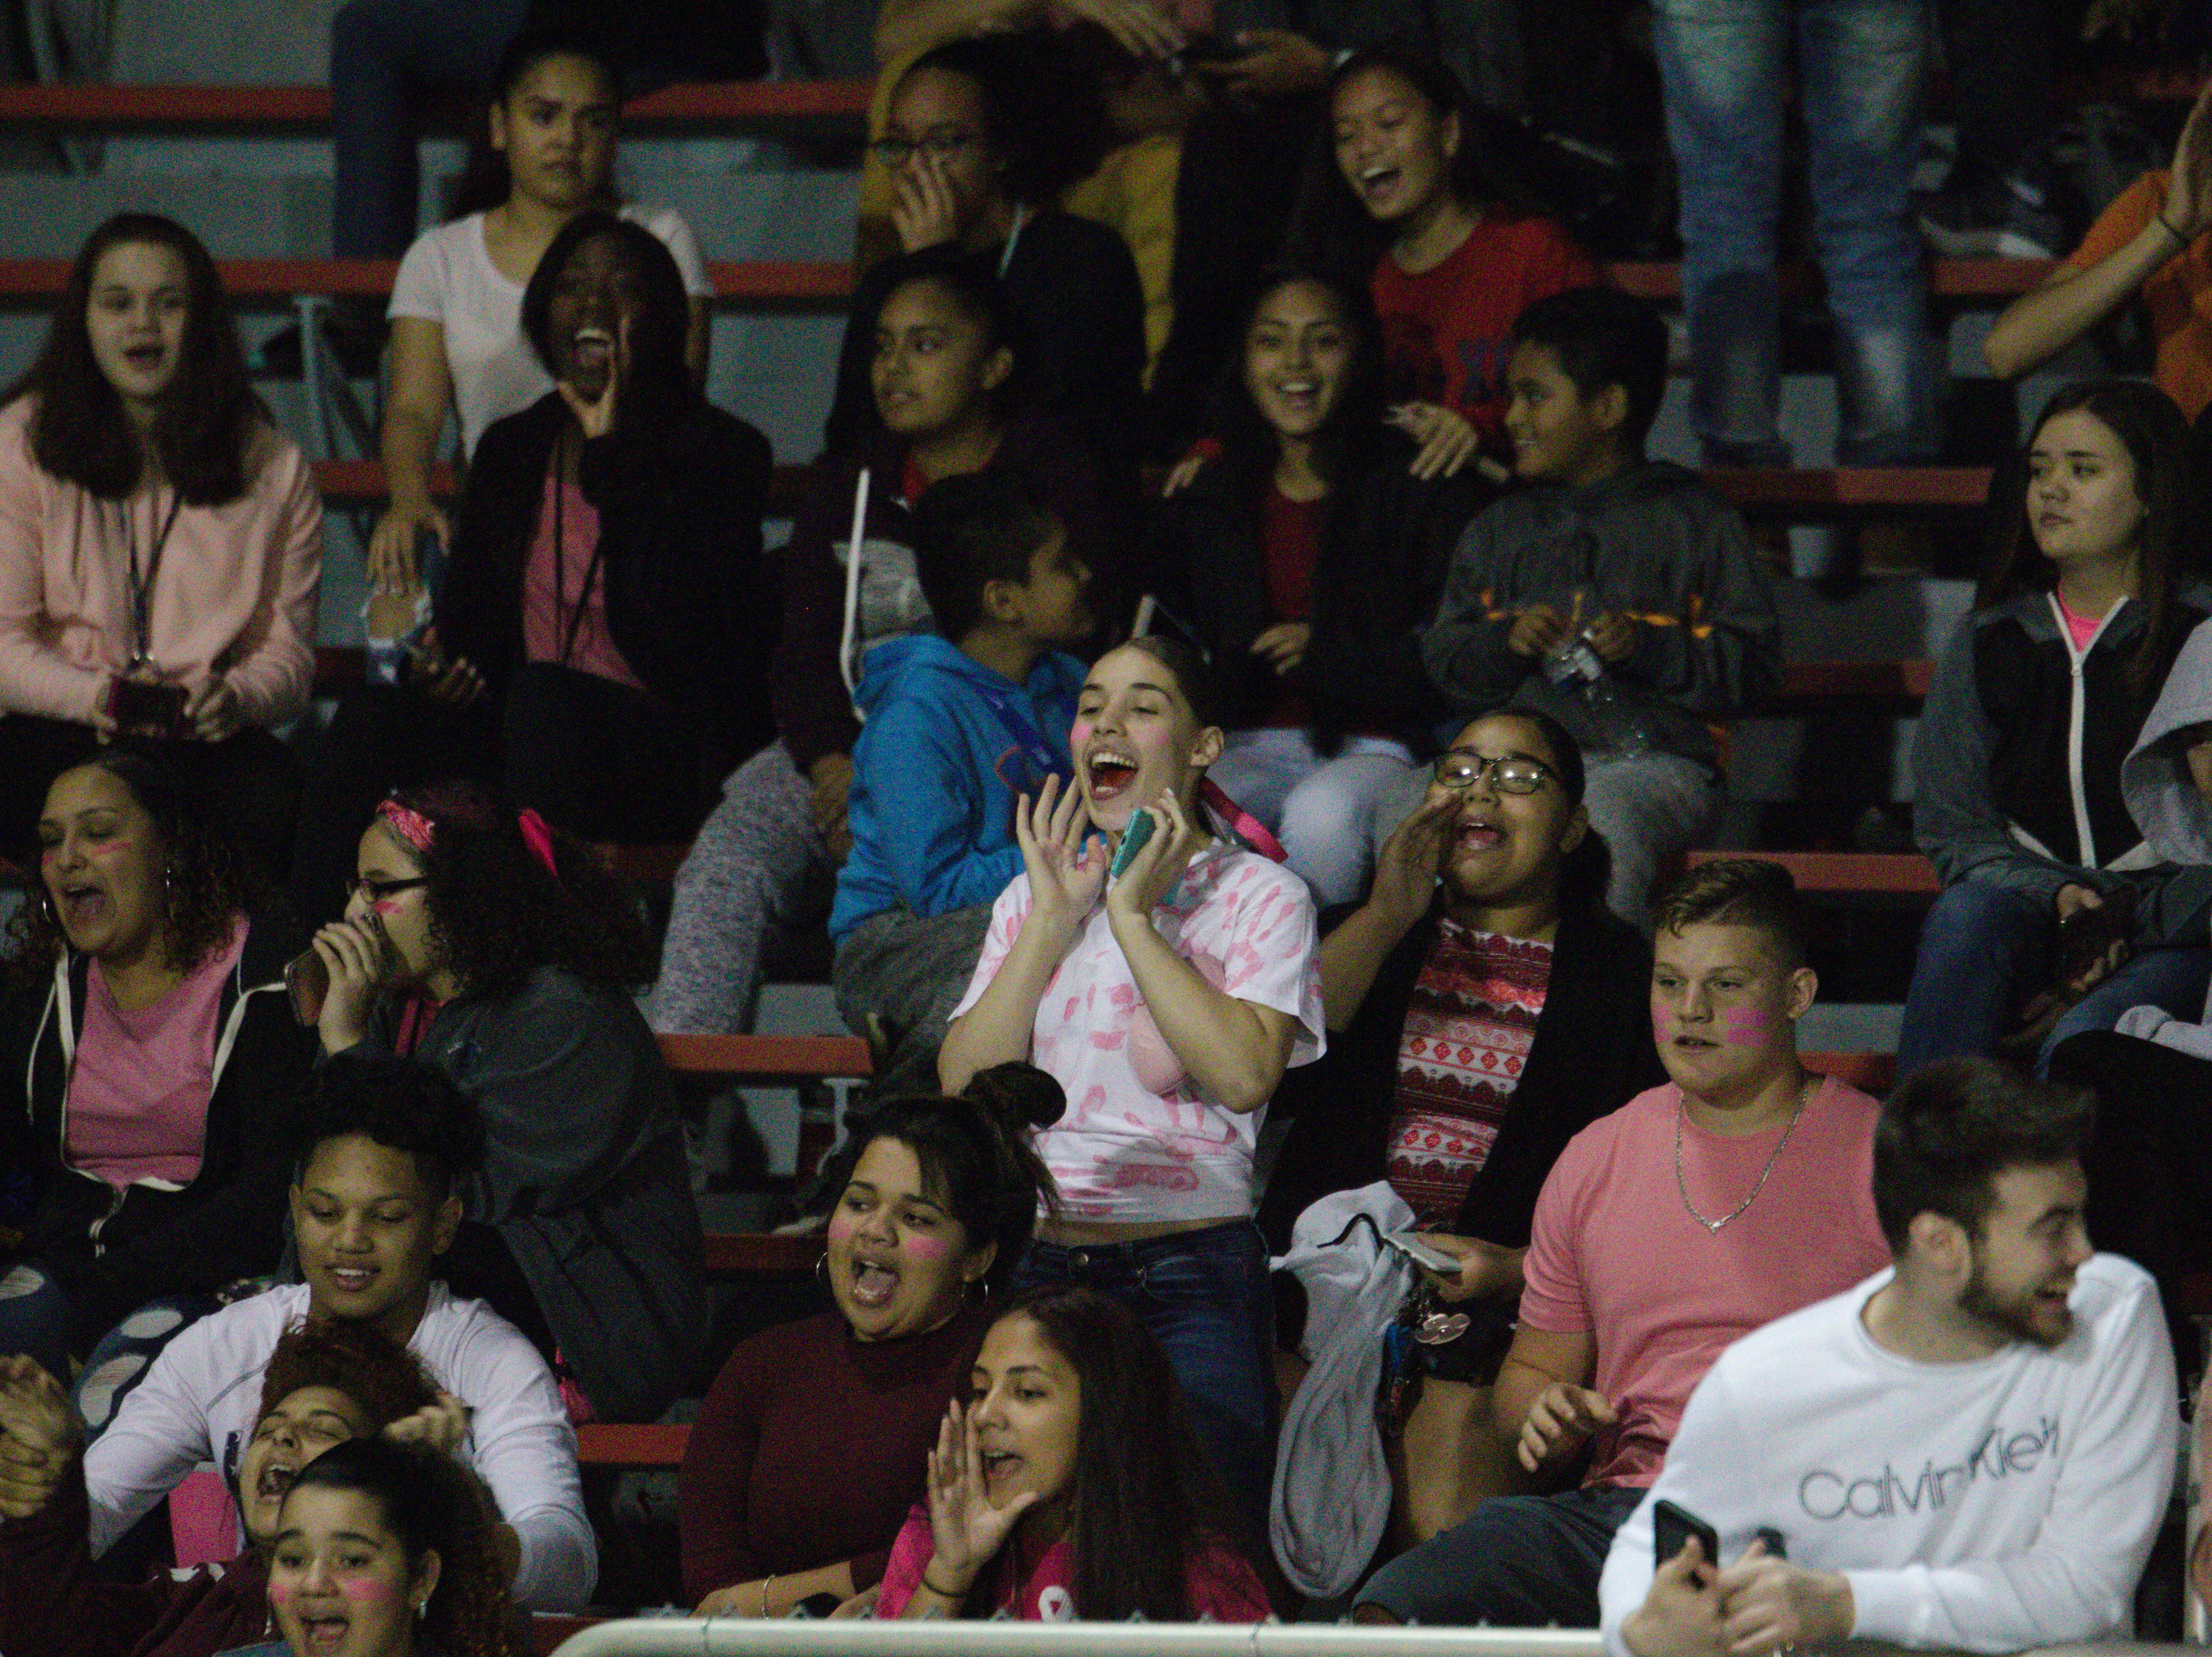 Lebanon fans cheer on their team during Friday night's win over Northern Lebanon.